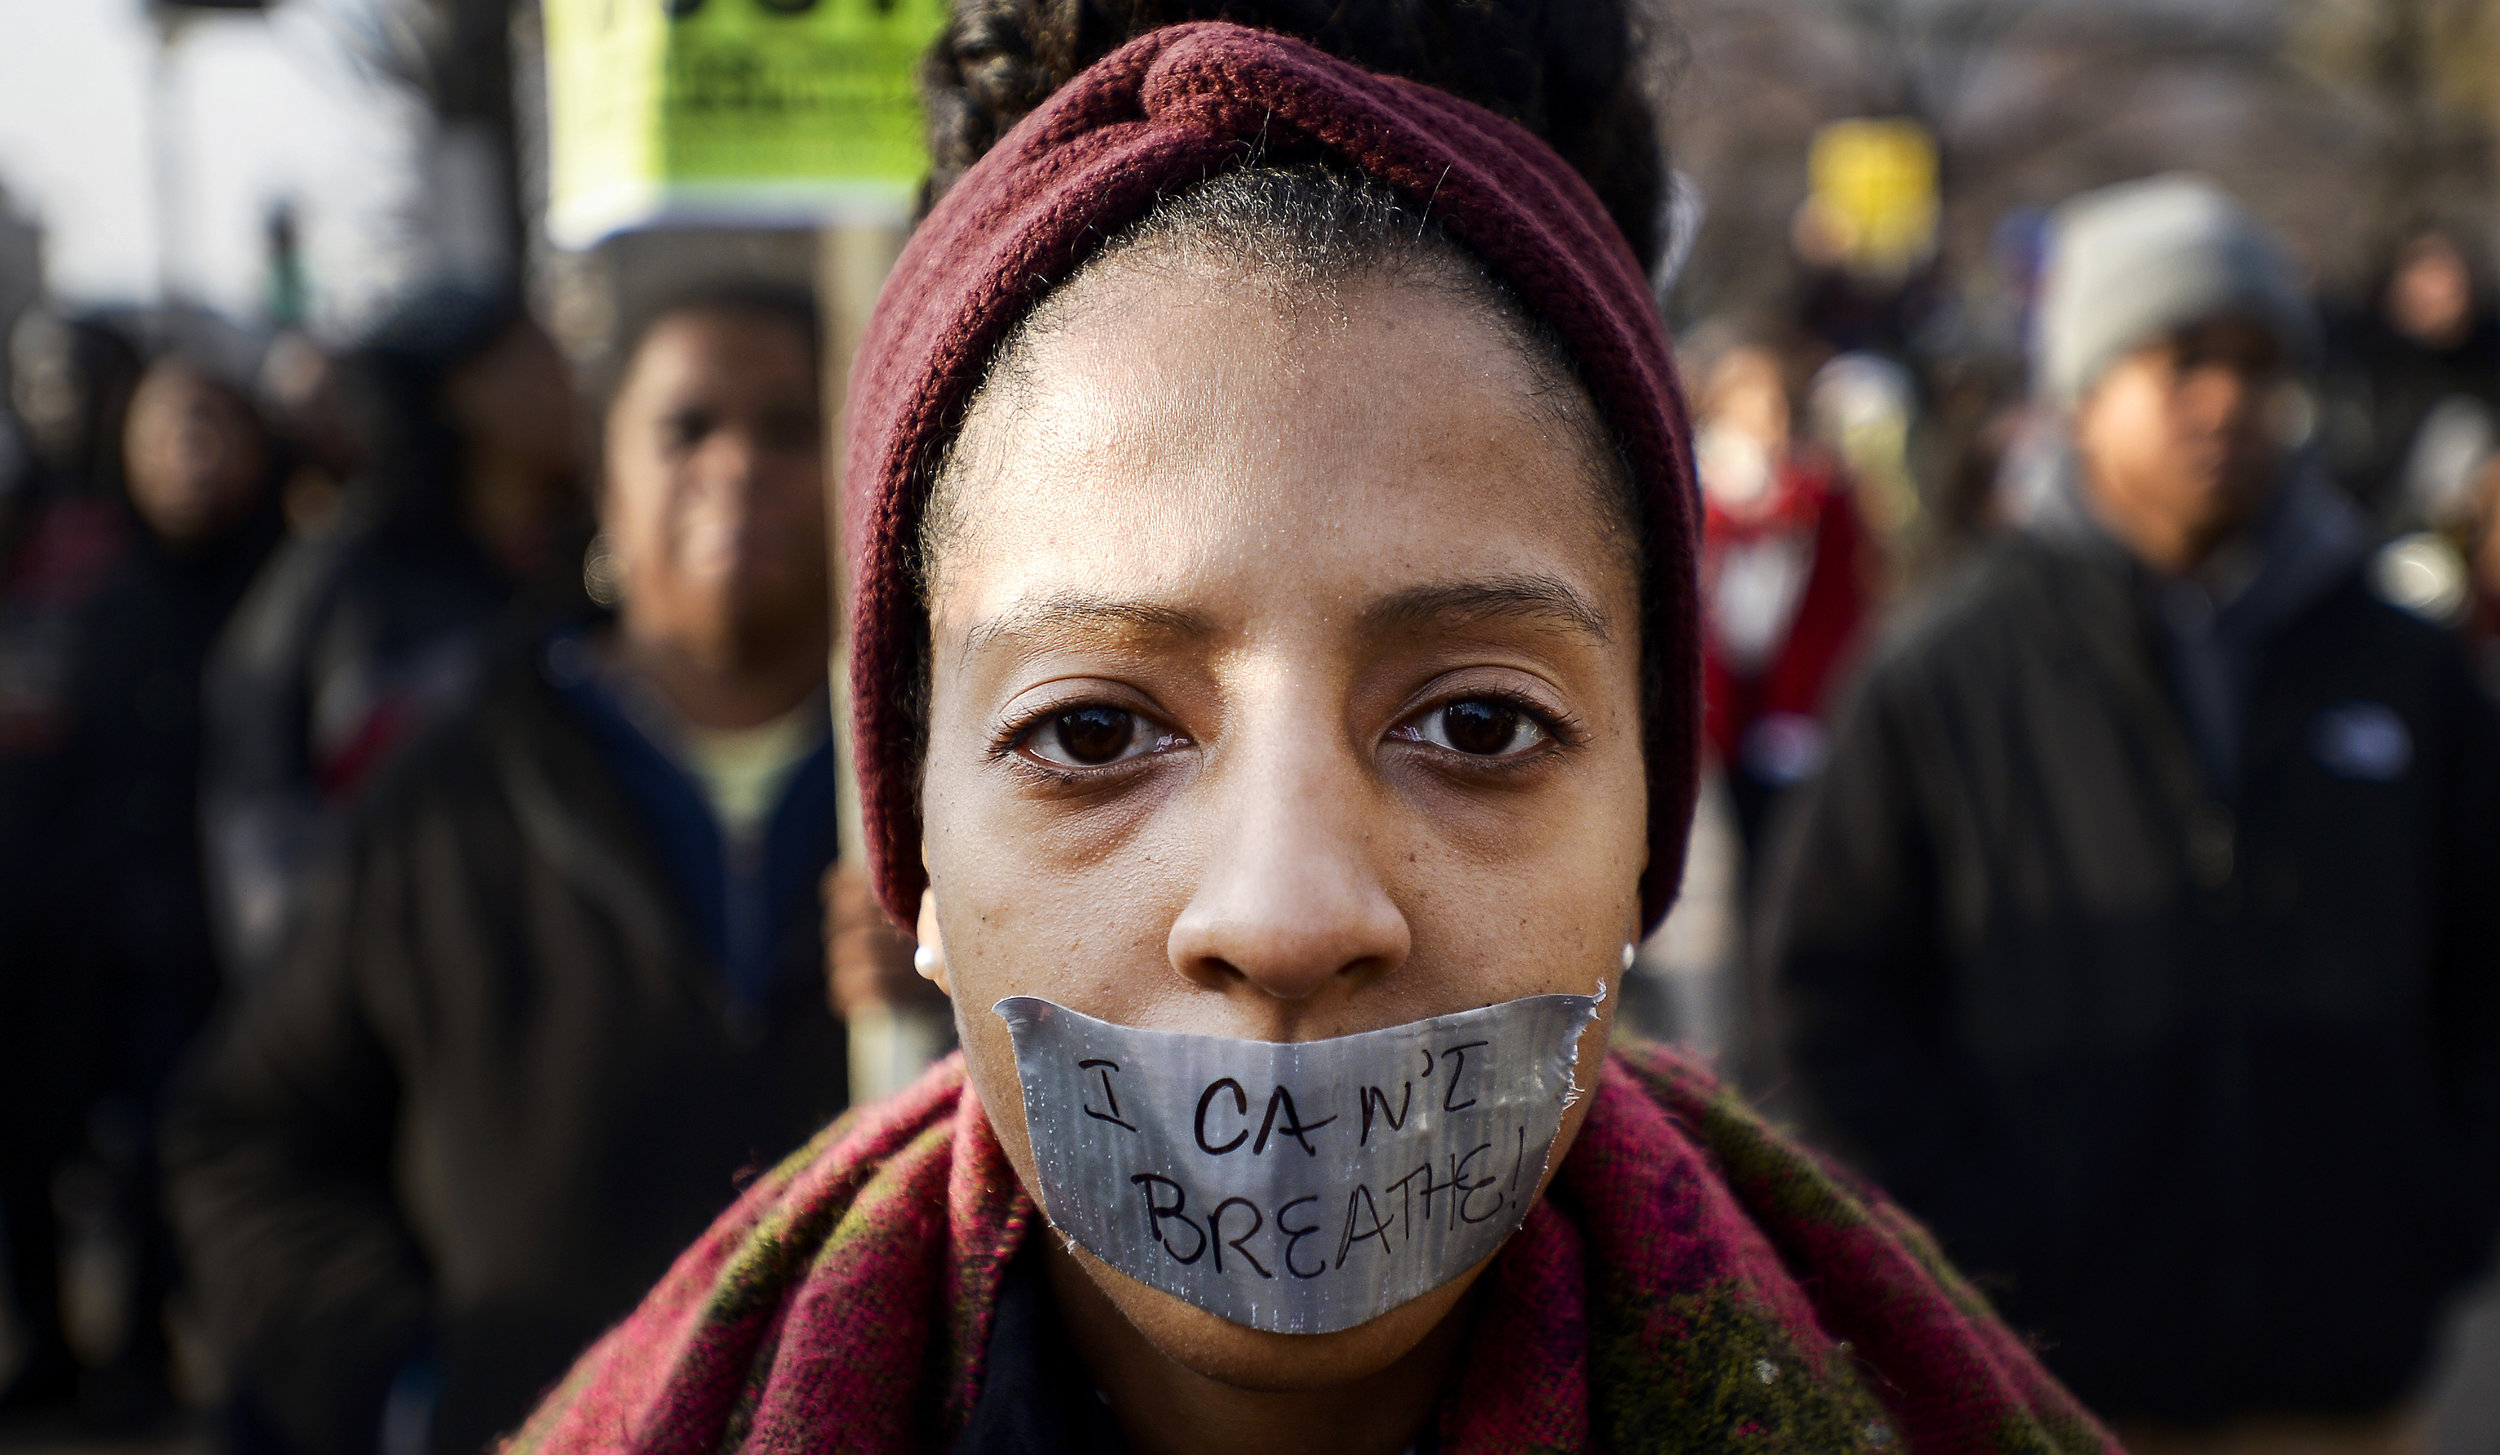 A demonstrator covers her mouth with duct tape in protest of the recent police killings in the United States. Thousands of people rallied in support of the families of Michael Brown and Eric Garner during the Justice for All march in Washington, D.C. on Dec. 13, 2014.